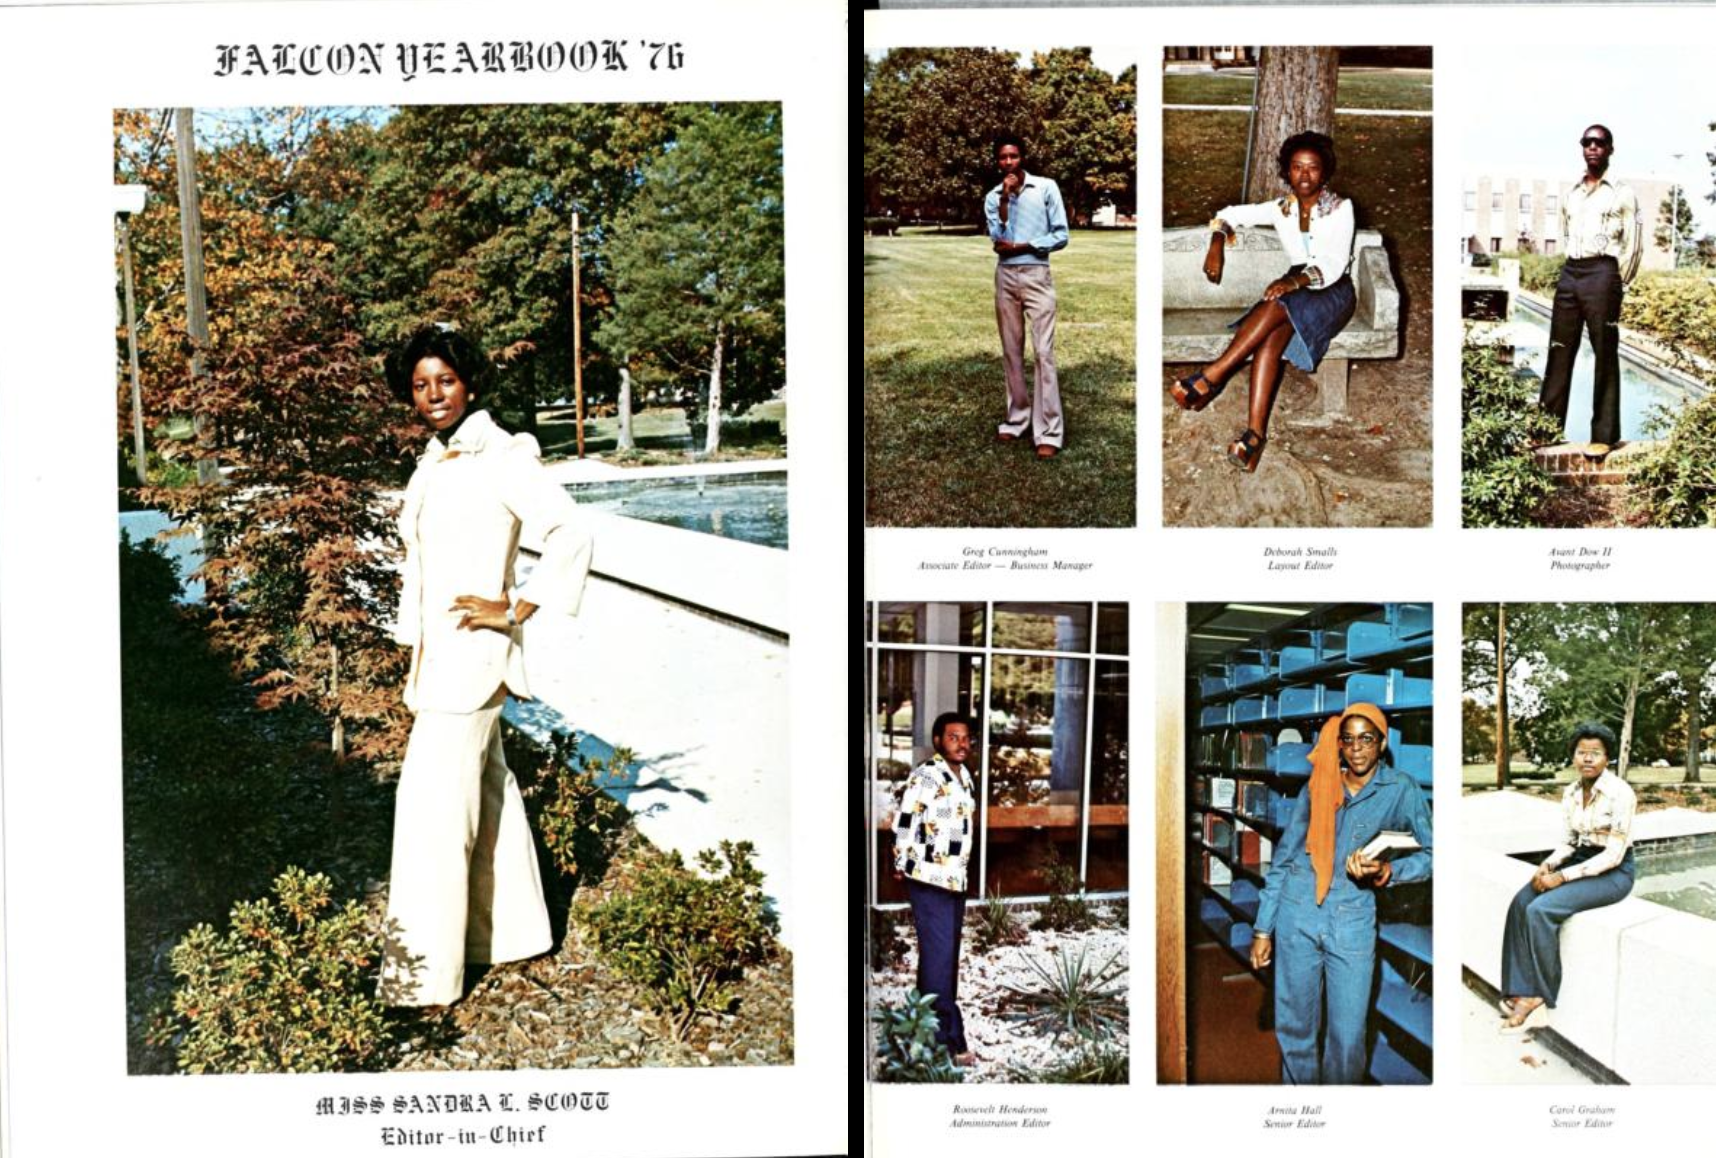 Two-page spread from the 1976 Saint Augustine's University yearbook, The Falcon. The left page features a color photo of the yearbook editor-in-chief Sandra C. Scott. The right page has colored photos of the rest of the yearbook staff; all are posed in various styles and locations.